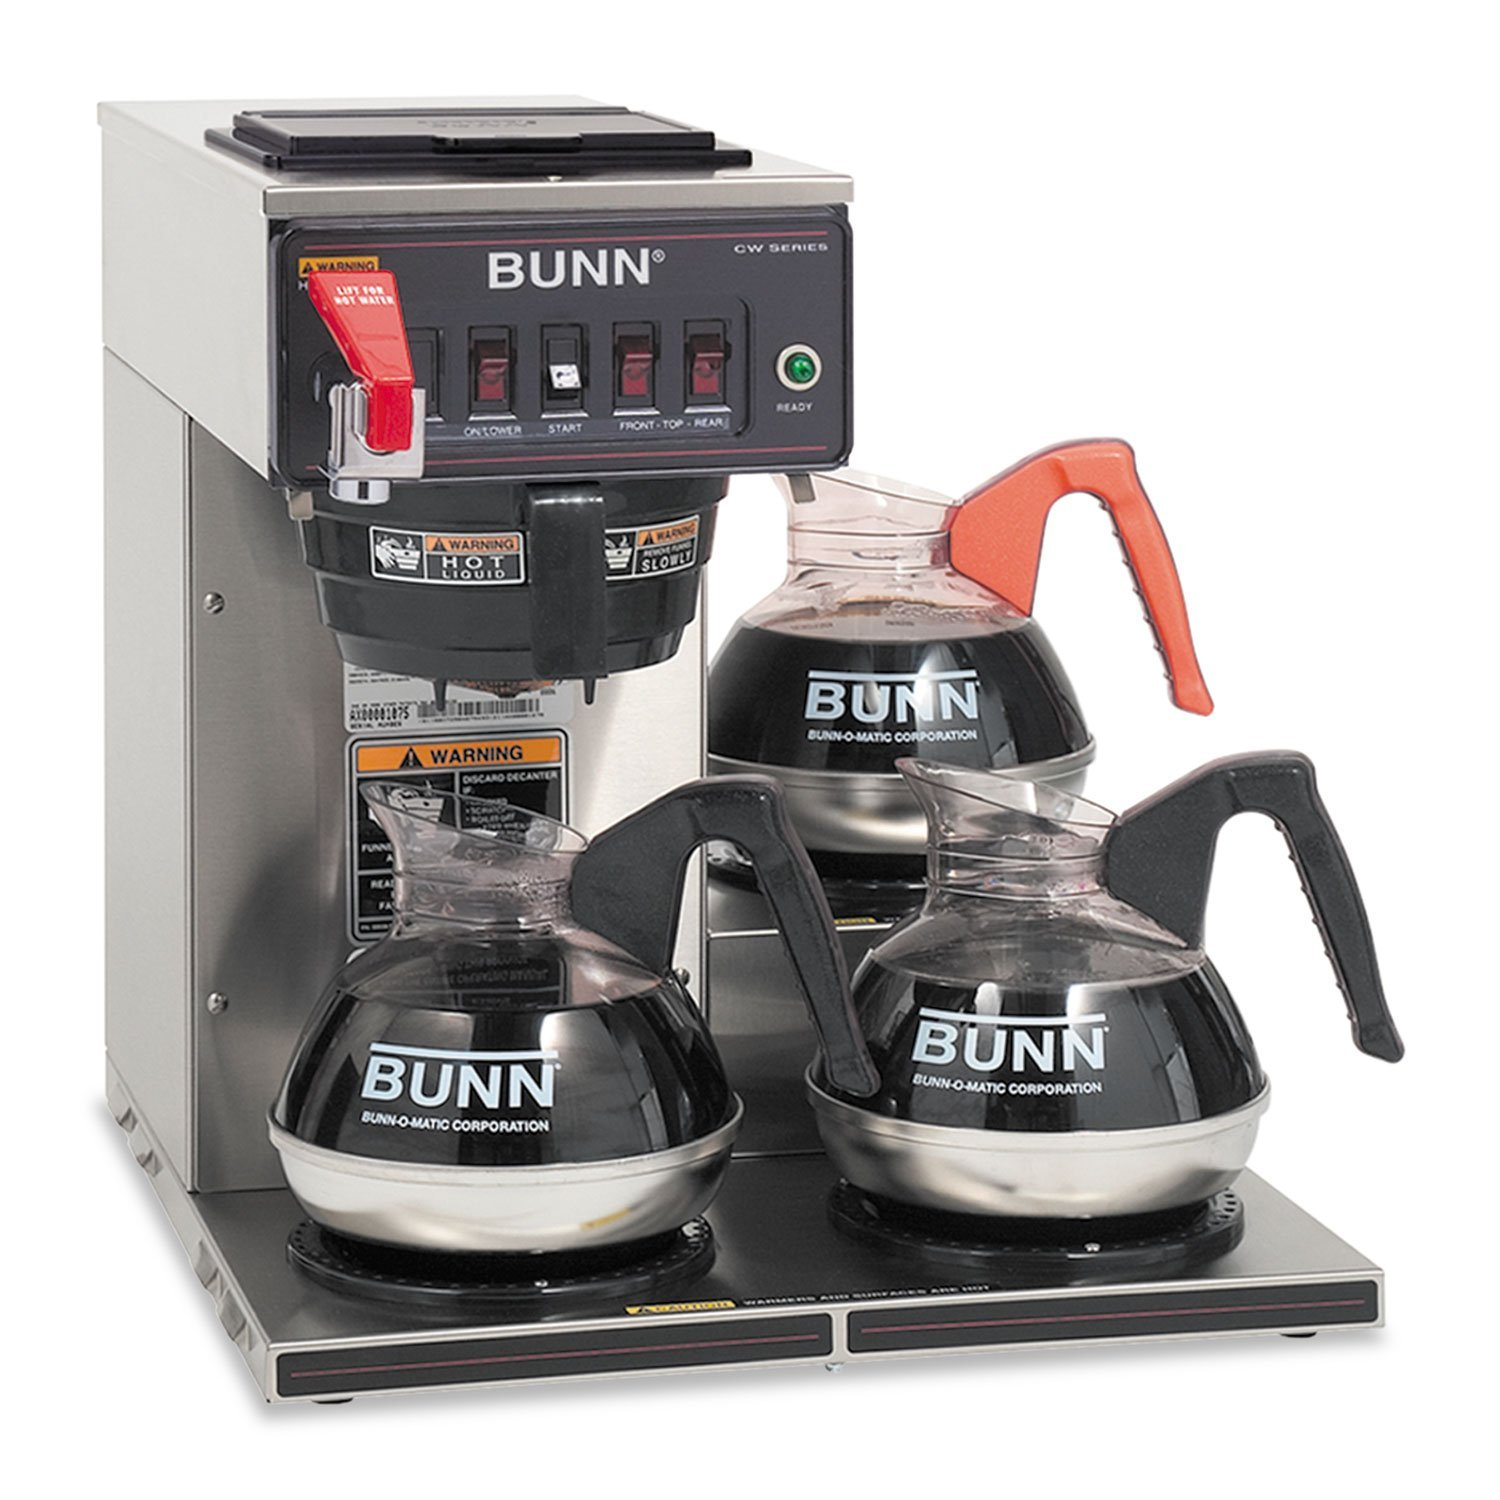 CWTF Automatic Coffee Maker Brewing Capacity: 3.9 gal./hr. (120 V), Type: Plastic Funnel (attached cord)